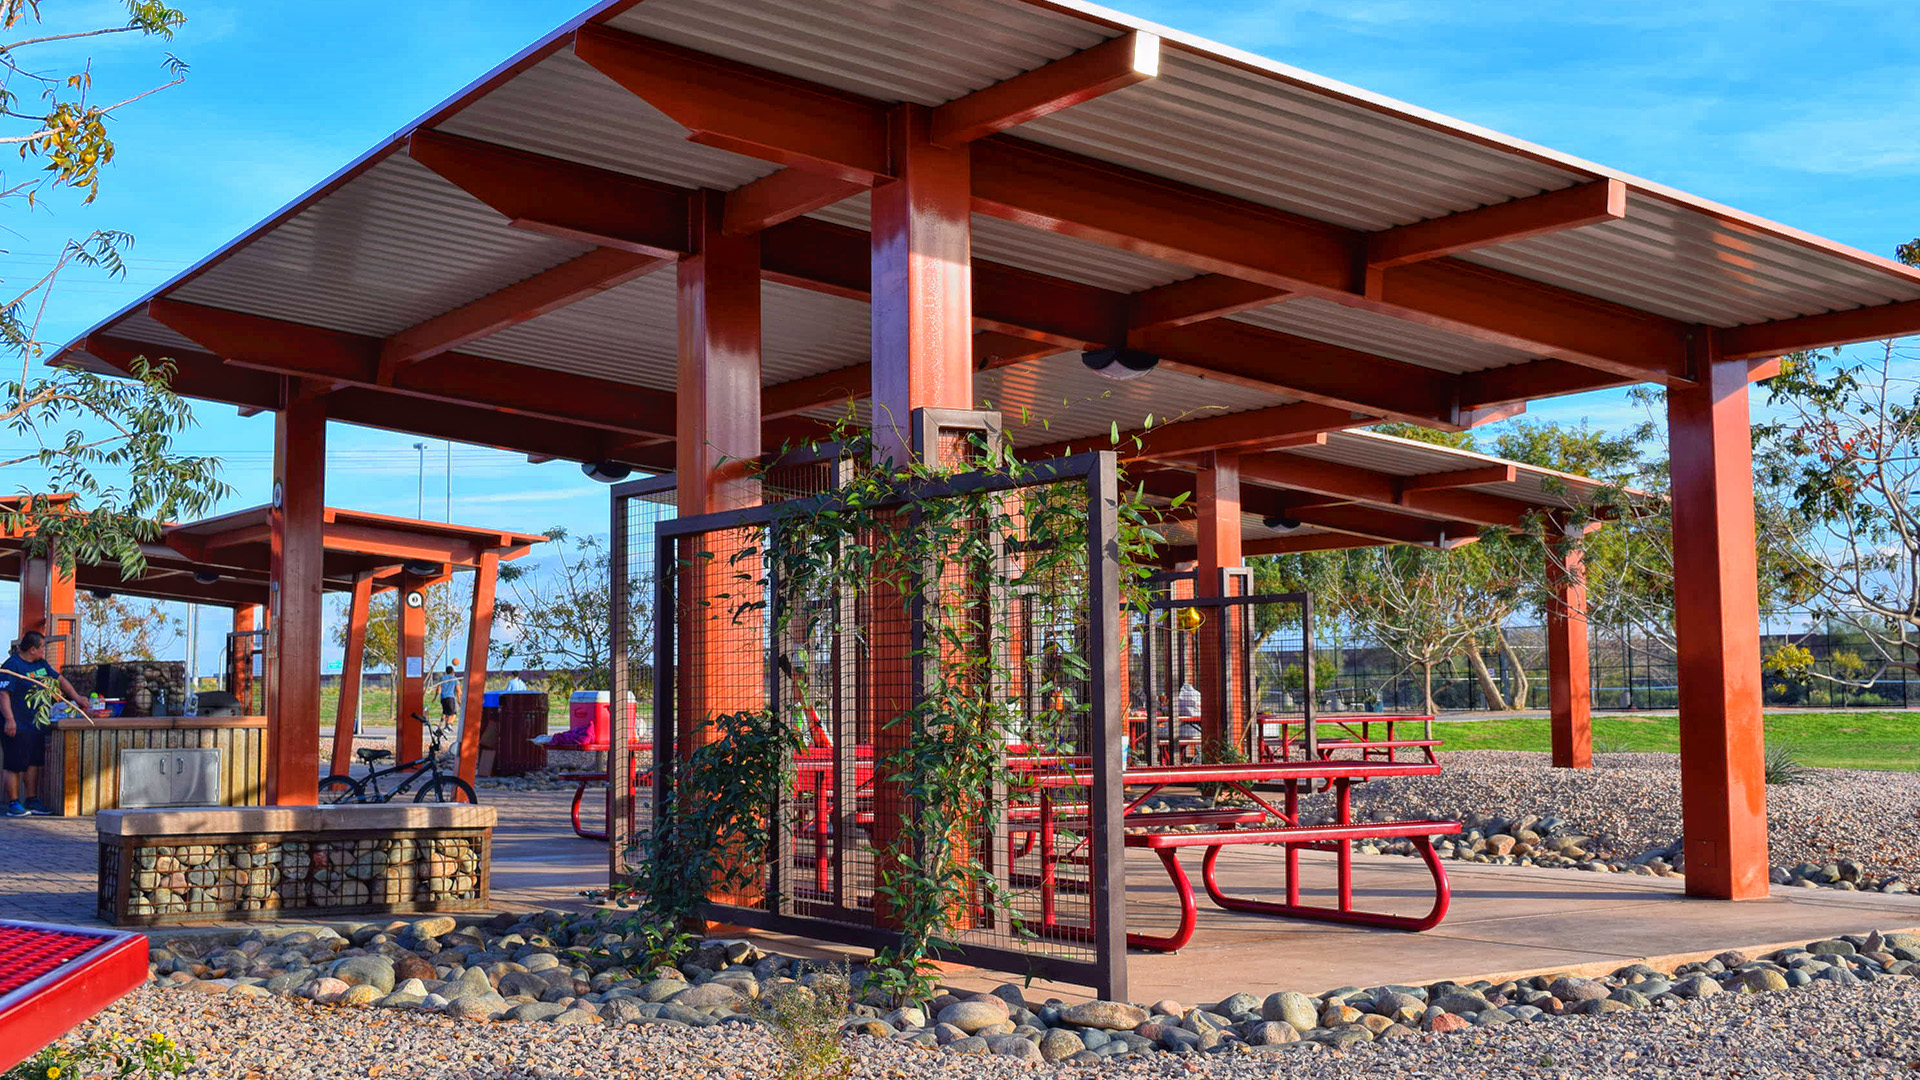 Ramada with picnic table and vegetative screen